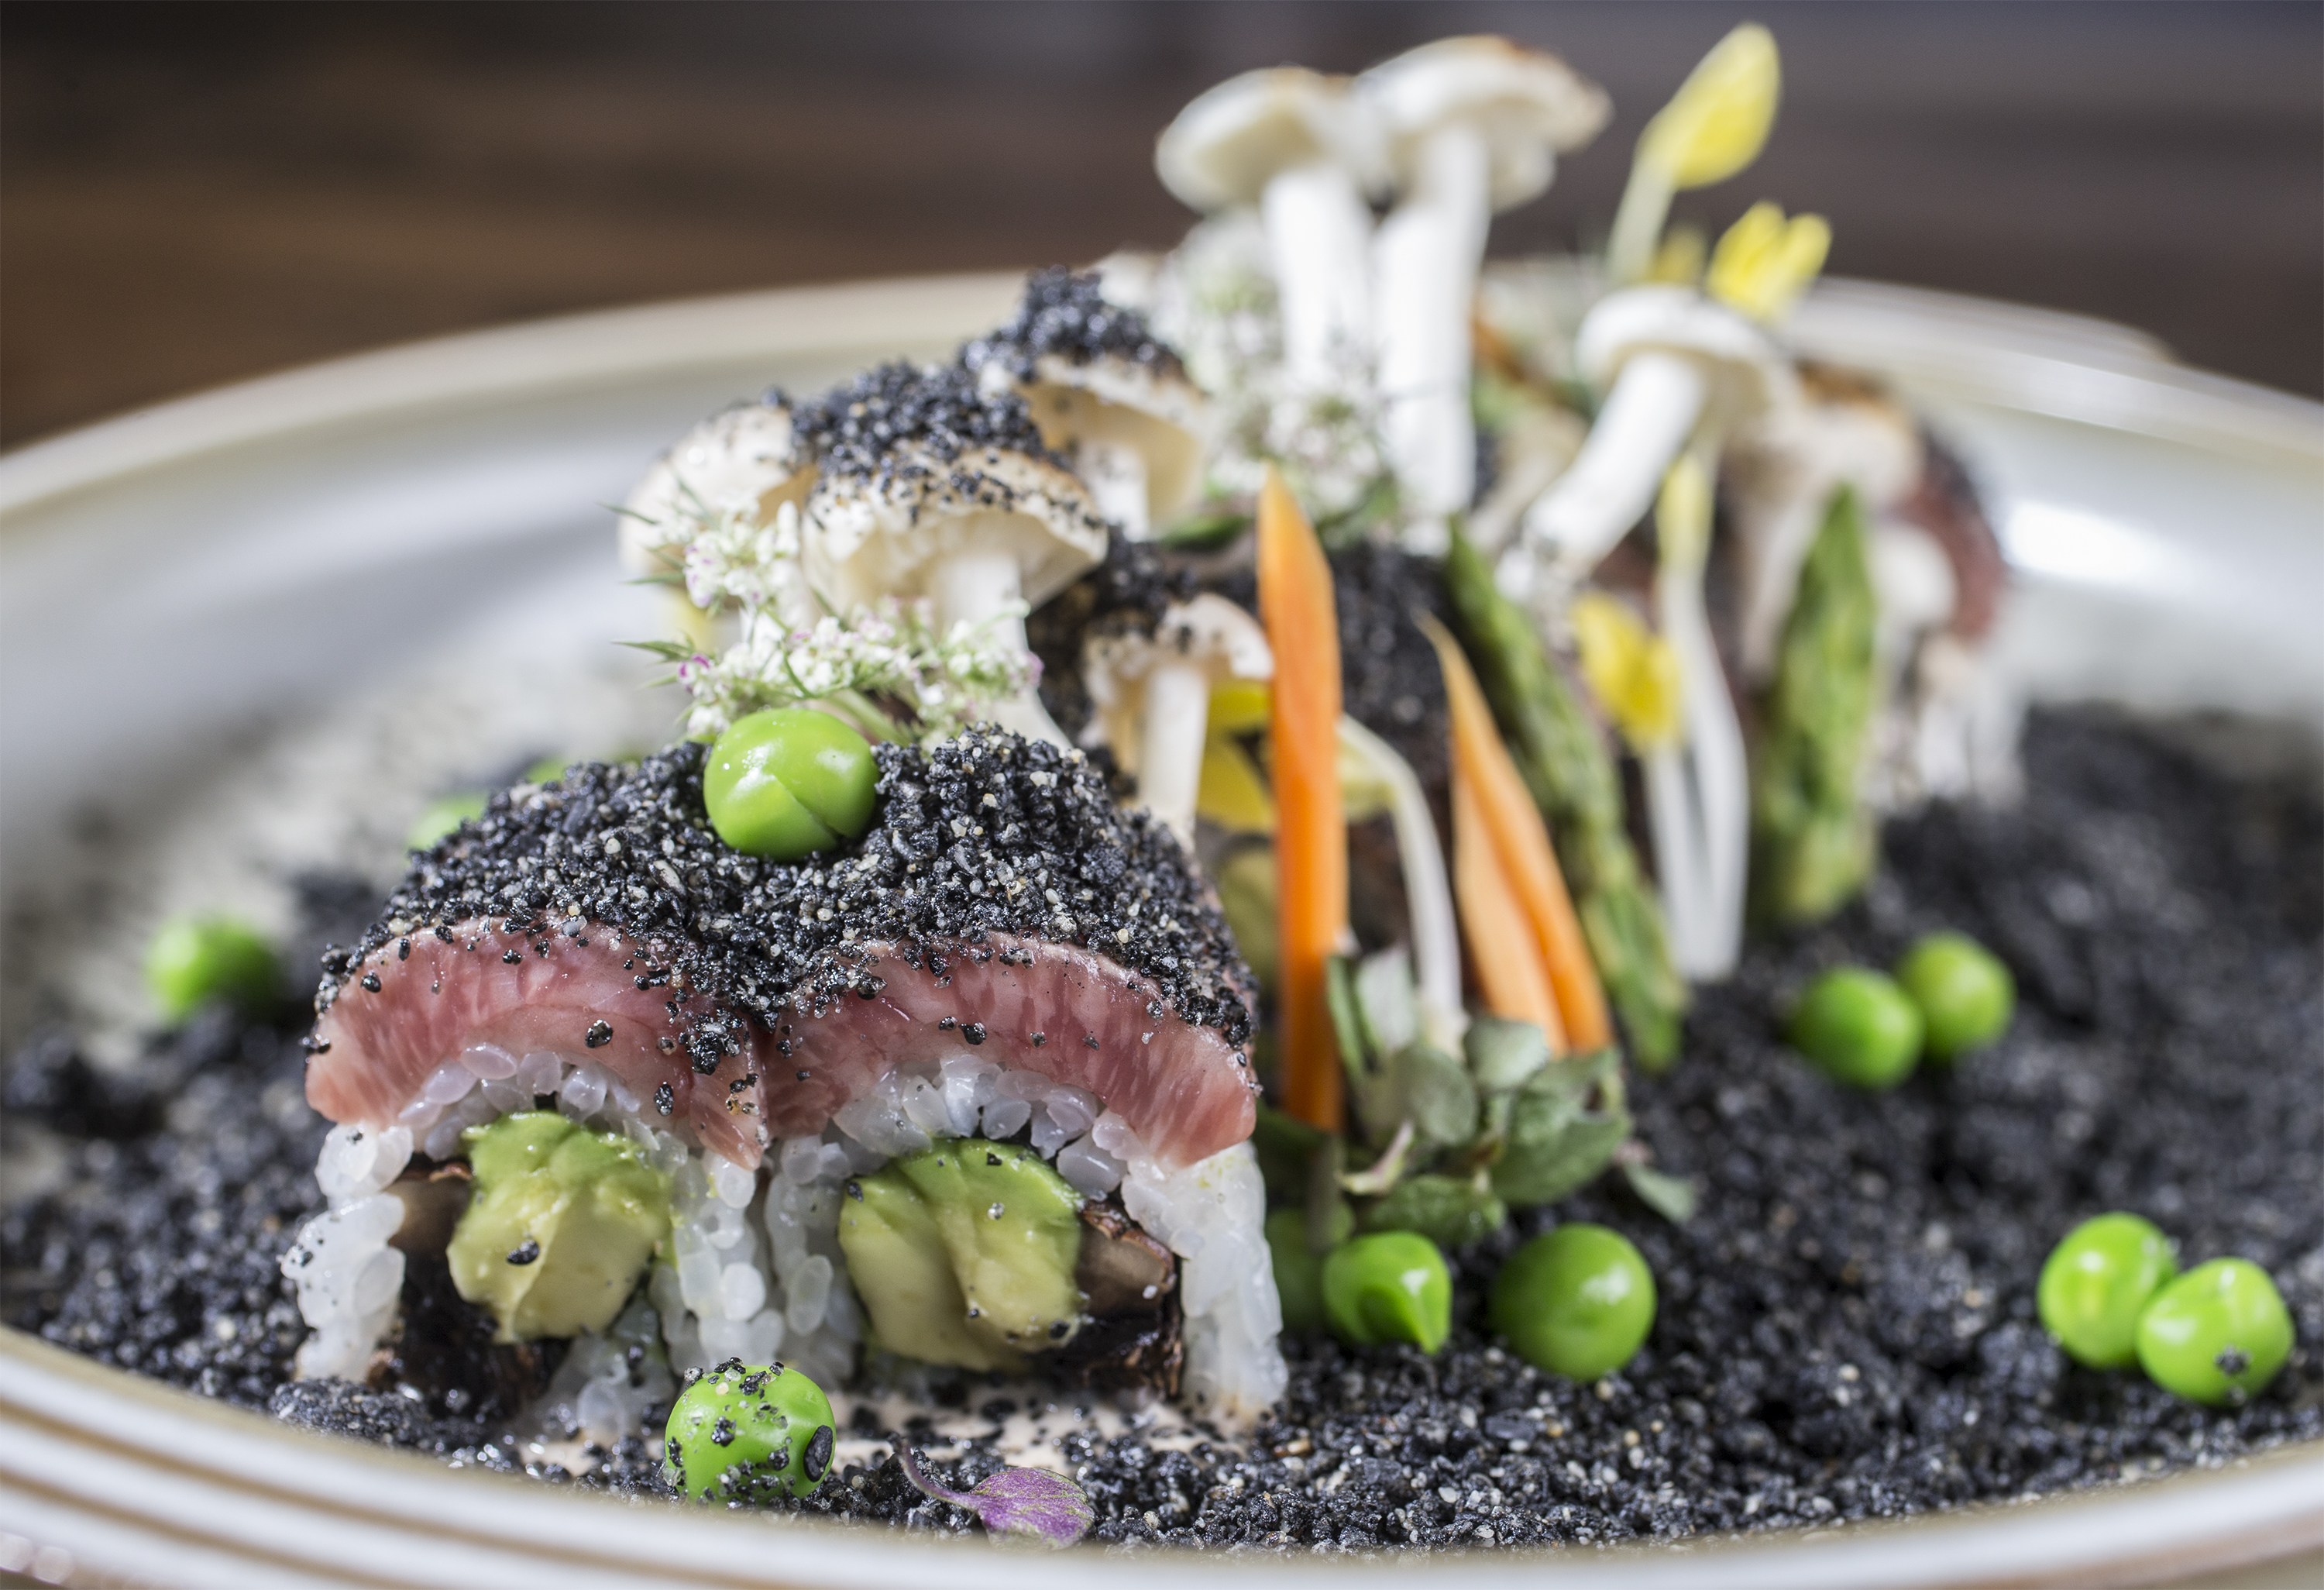 Wagyu beef roll at SushiSamba recreates a forest landscape with black sesame, avocado​ and mushrooms